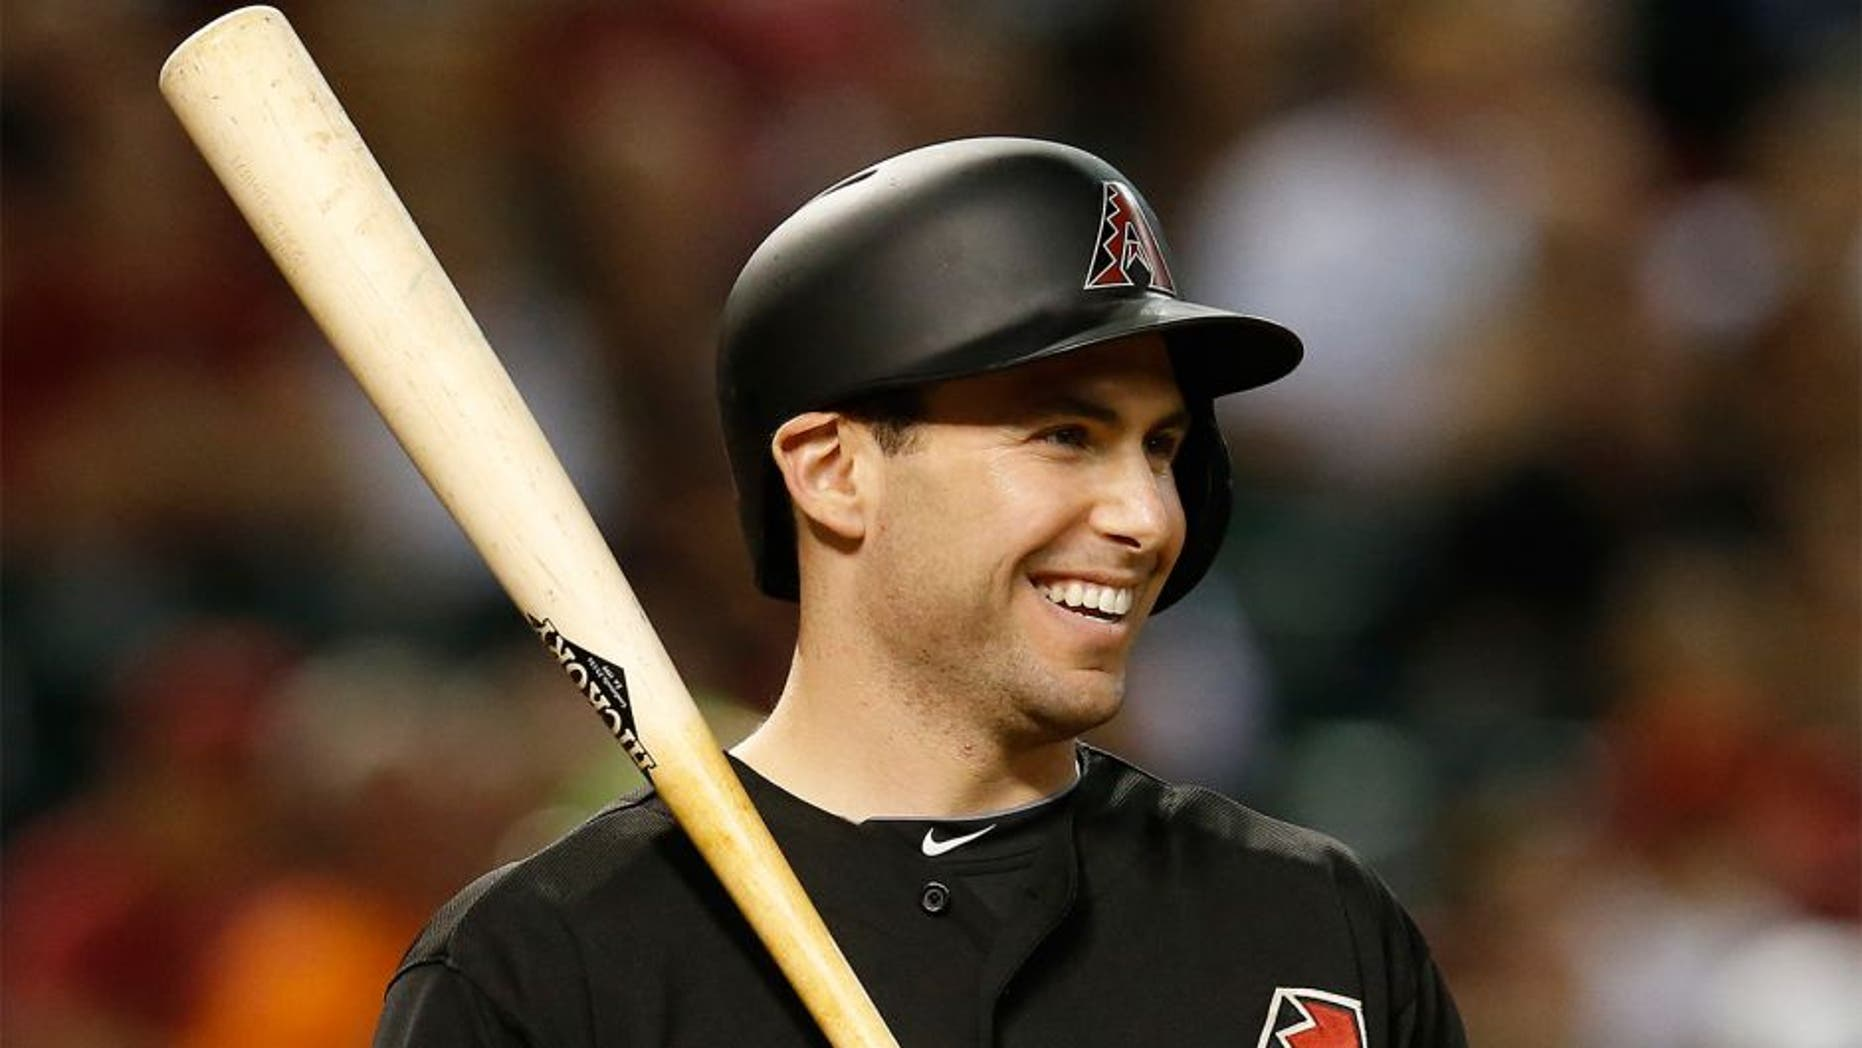 """FILE - In this June 6, 2015, file photo, Arizona Diamondbacks Paul Goldschmidt reacts while being intentionally walked in the eighth inning of a baseball game against the New York Mets in Phoenix. Goldschmidt is having a season as good as anyone in the majors. Yet the attention he receives nationally is far less thant the other so-called big names in the game. His response? """"I couldn't care less."""" (AP Photo/Rick Scuteri, File)"""